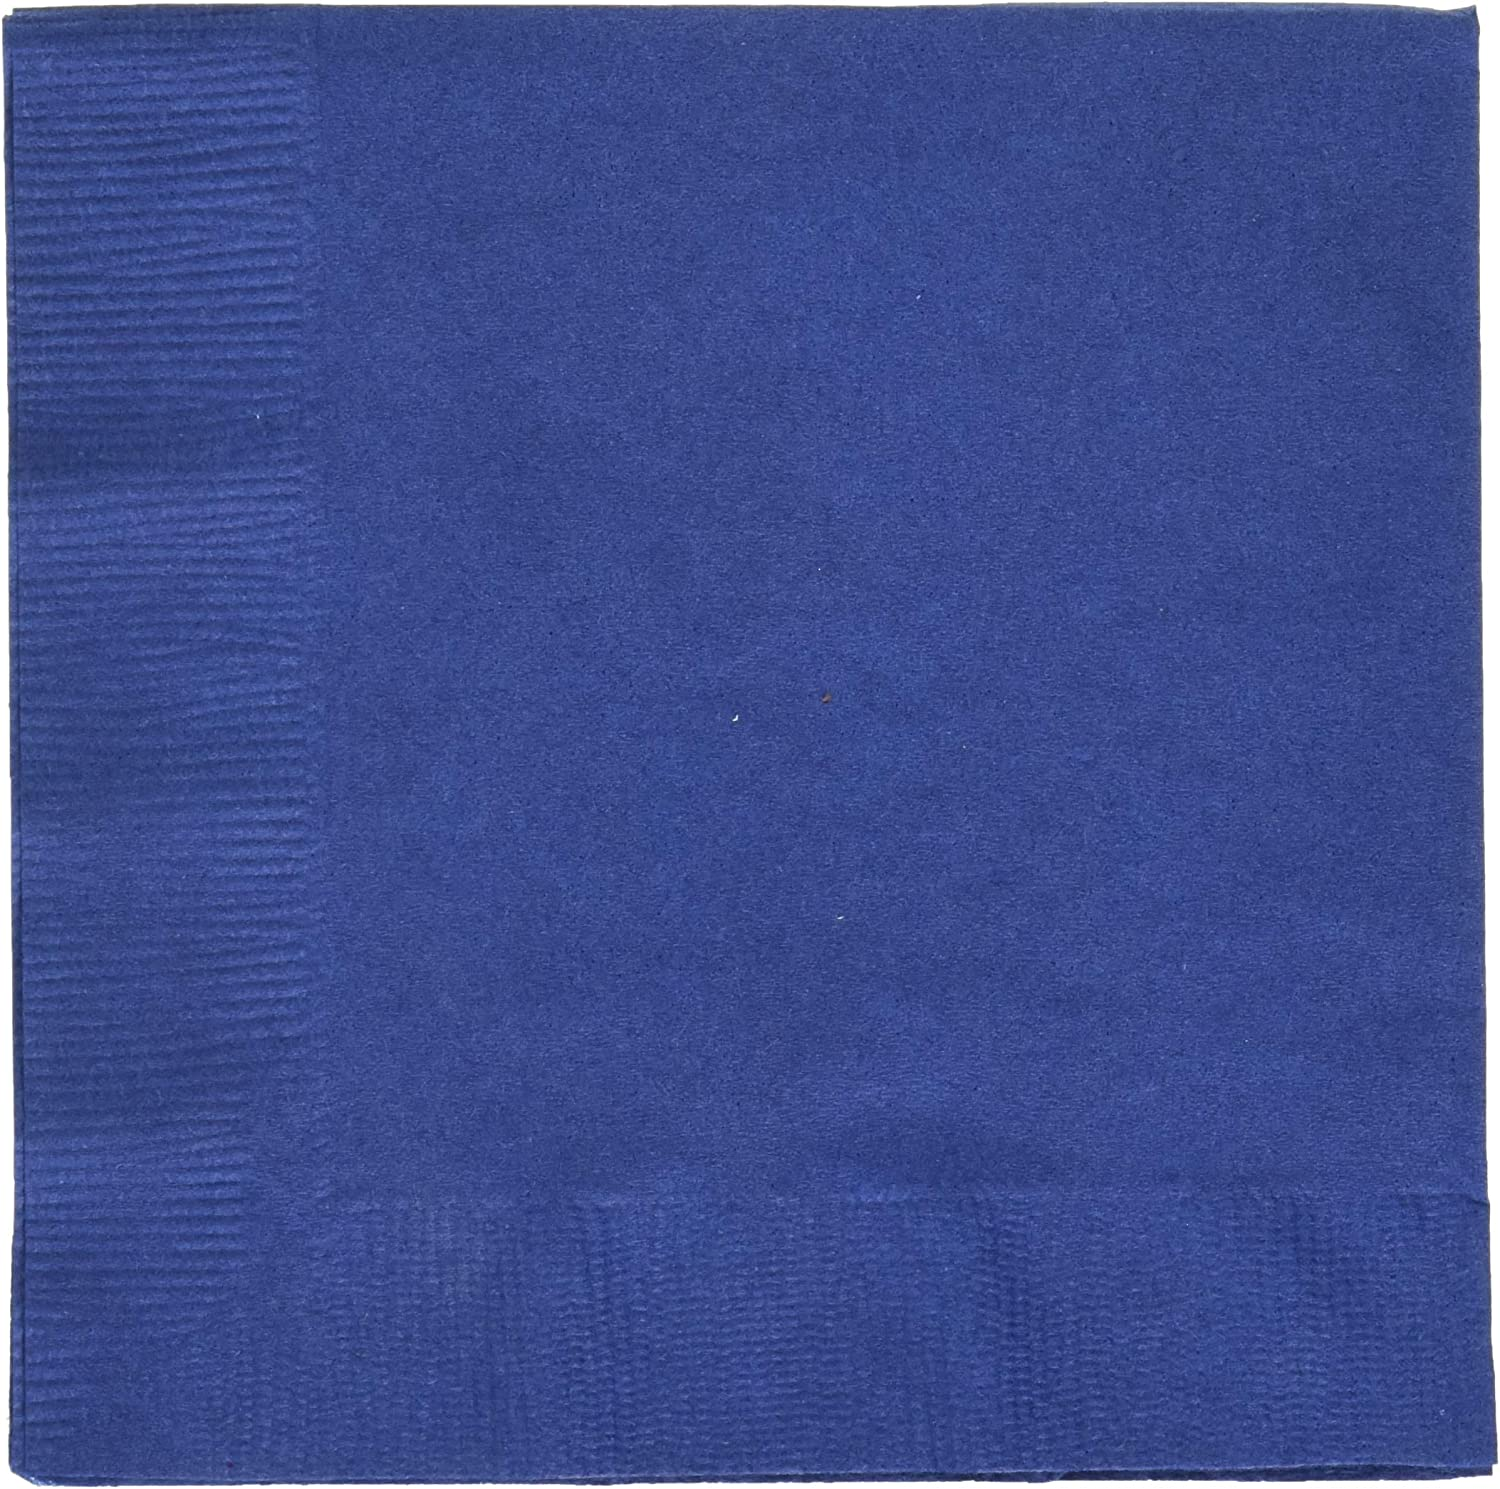 Creative Expressions Cocktail/Beverage Napkins, Navy Blue (571137B)